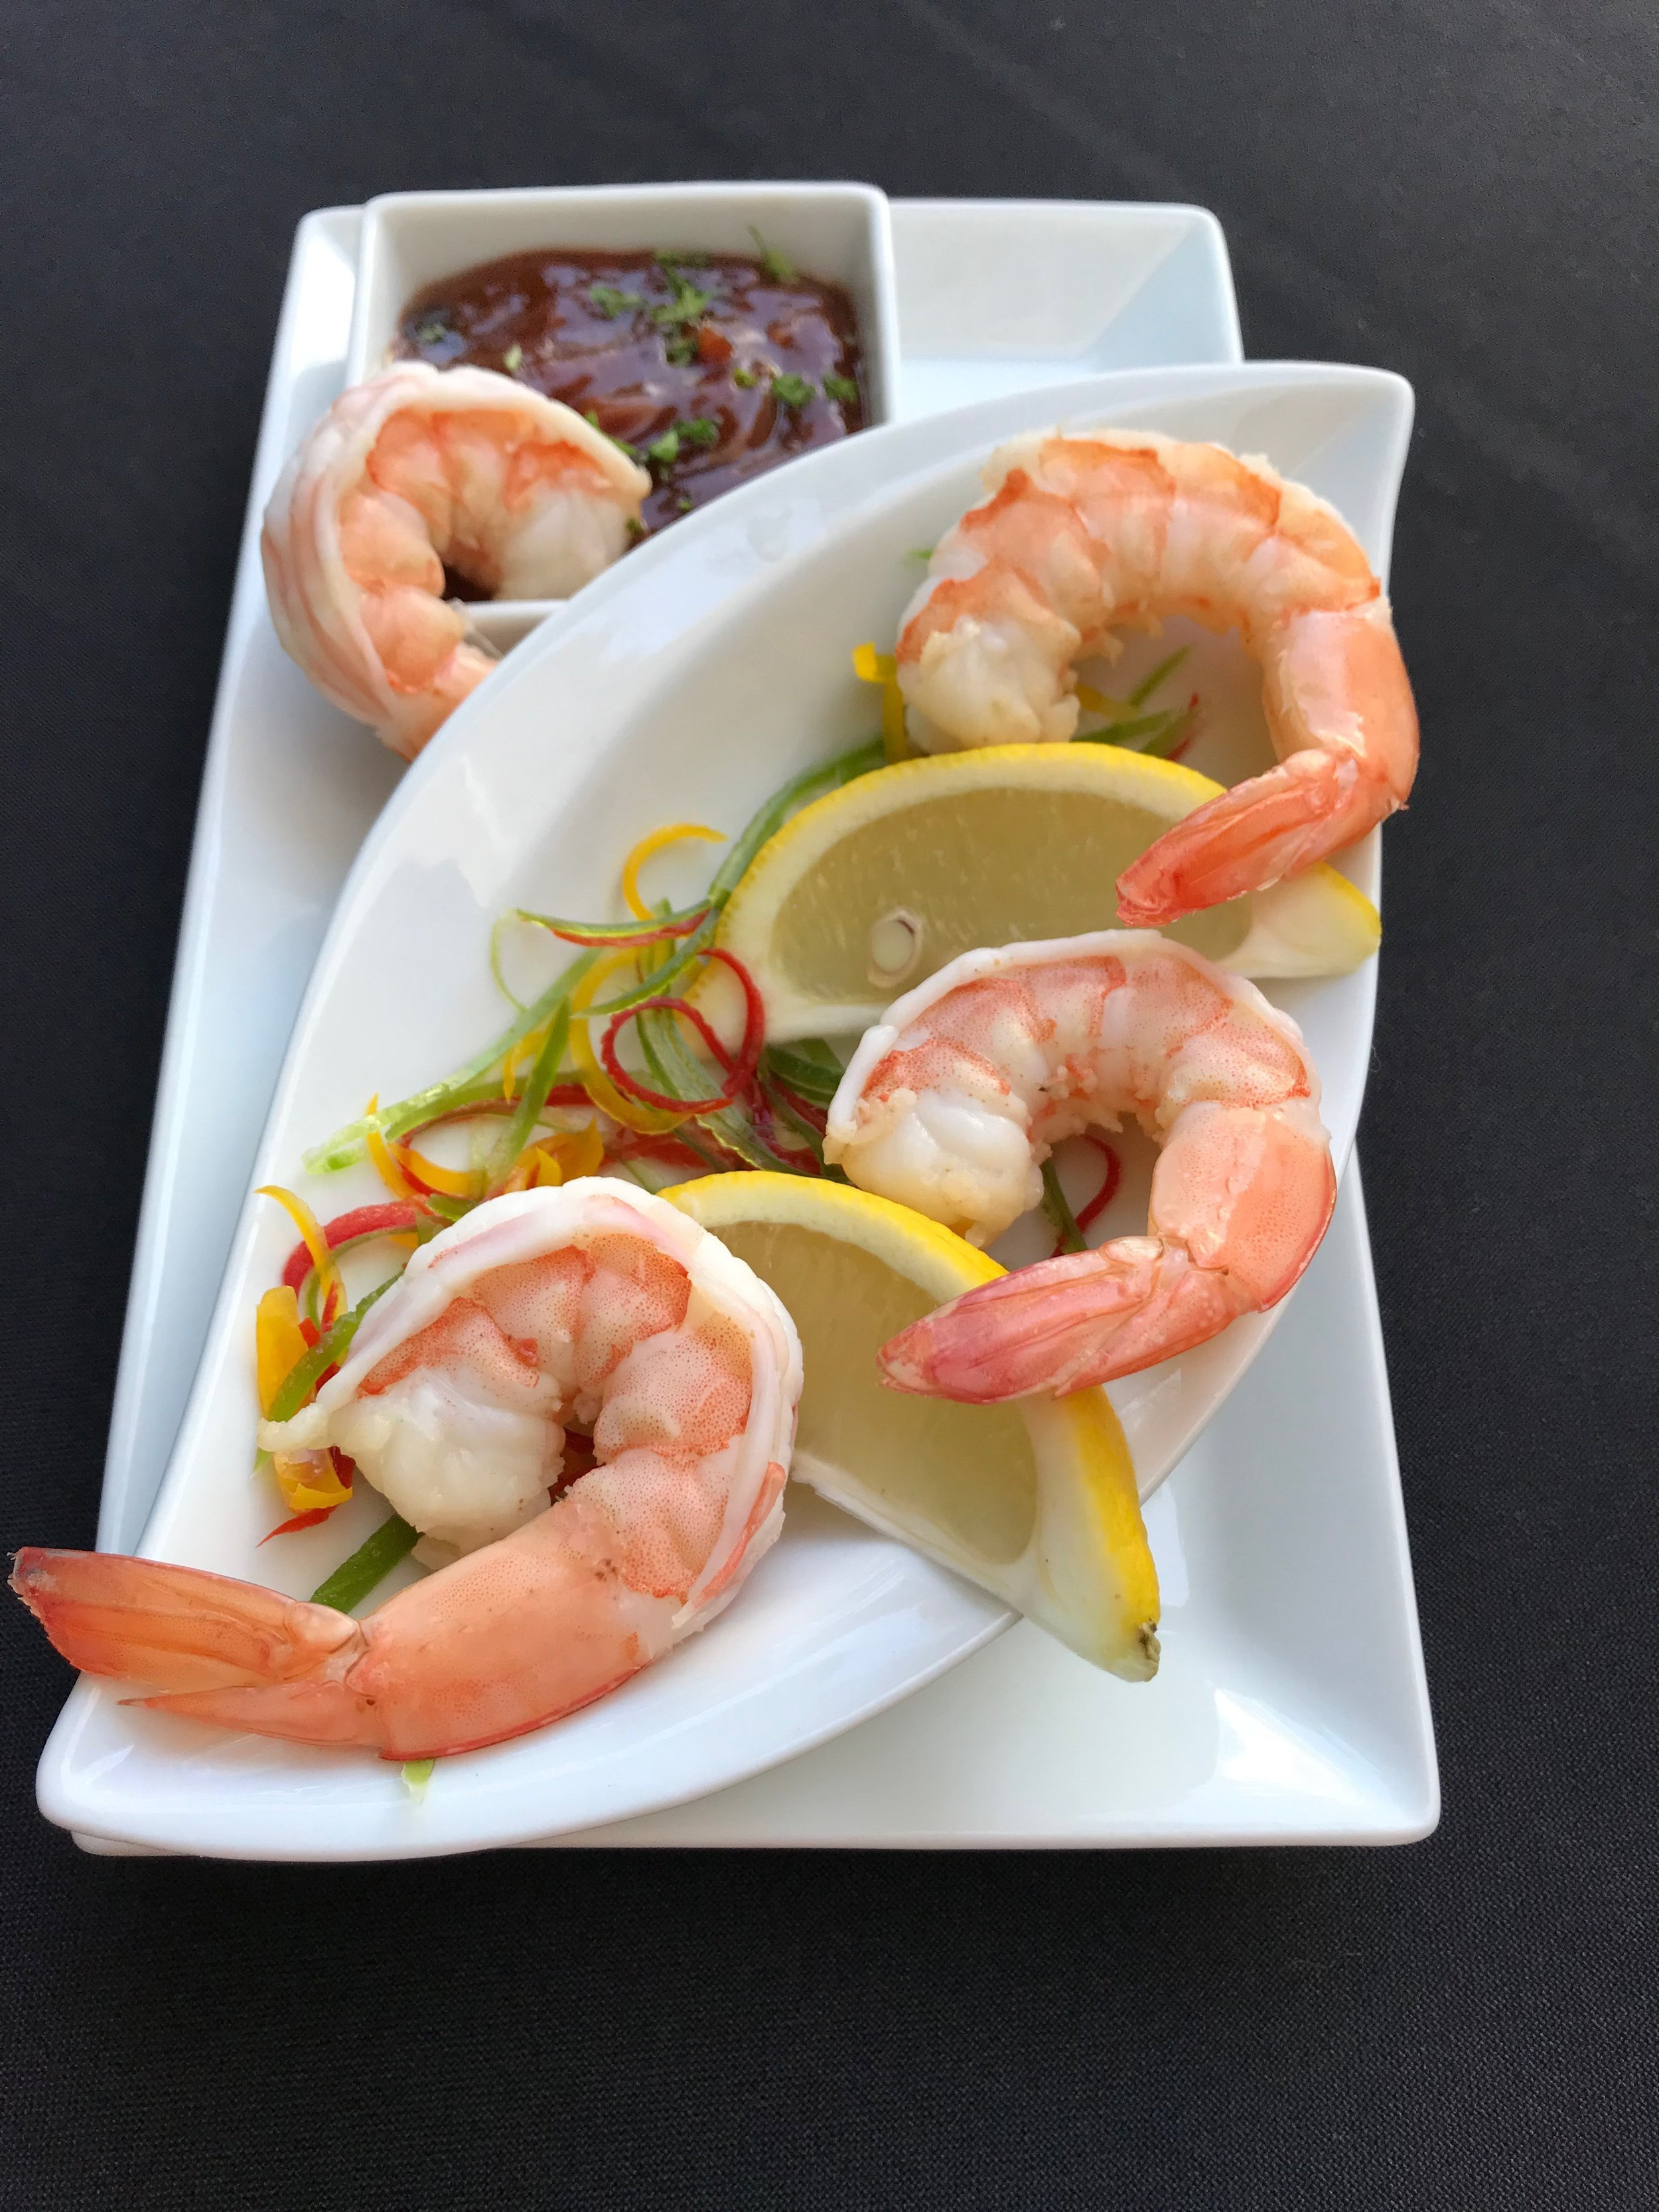 Shrimp Cocktail - Shrimp, poached in stock flavored with celery, onions, carrot, bay leaf, parsley & thyme, and served with horseradish cocktail sauce